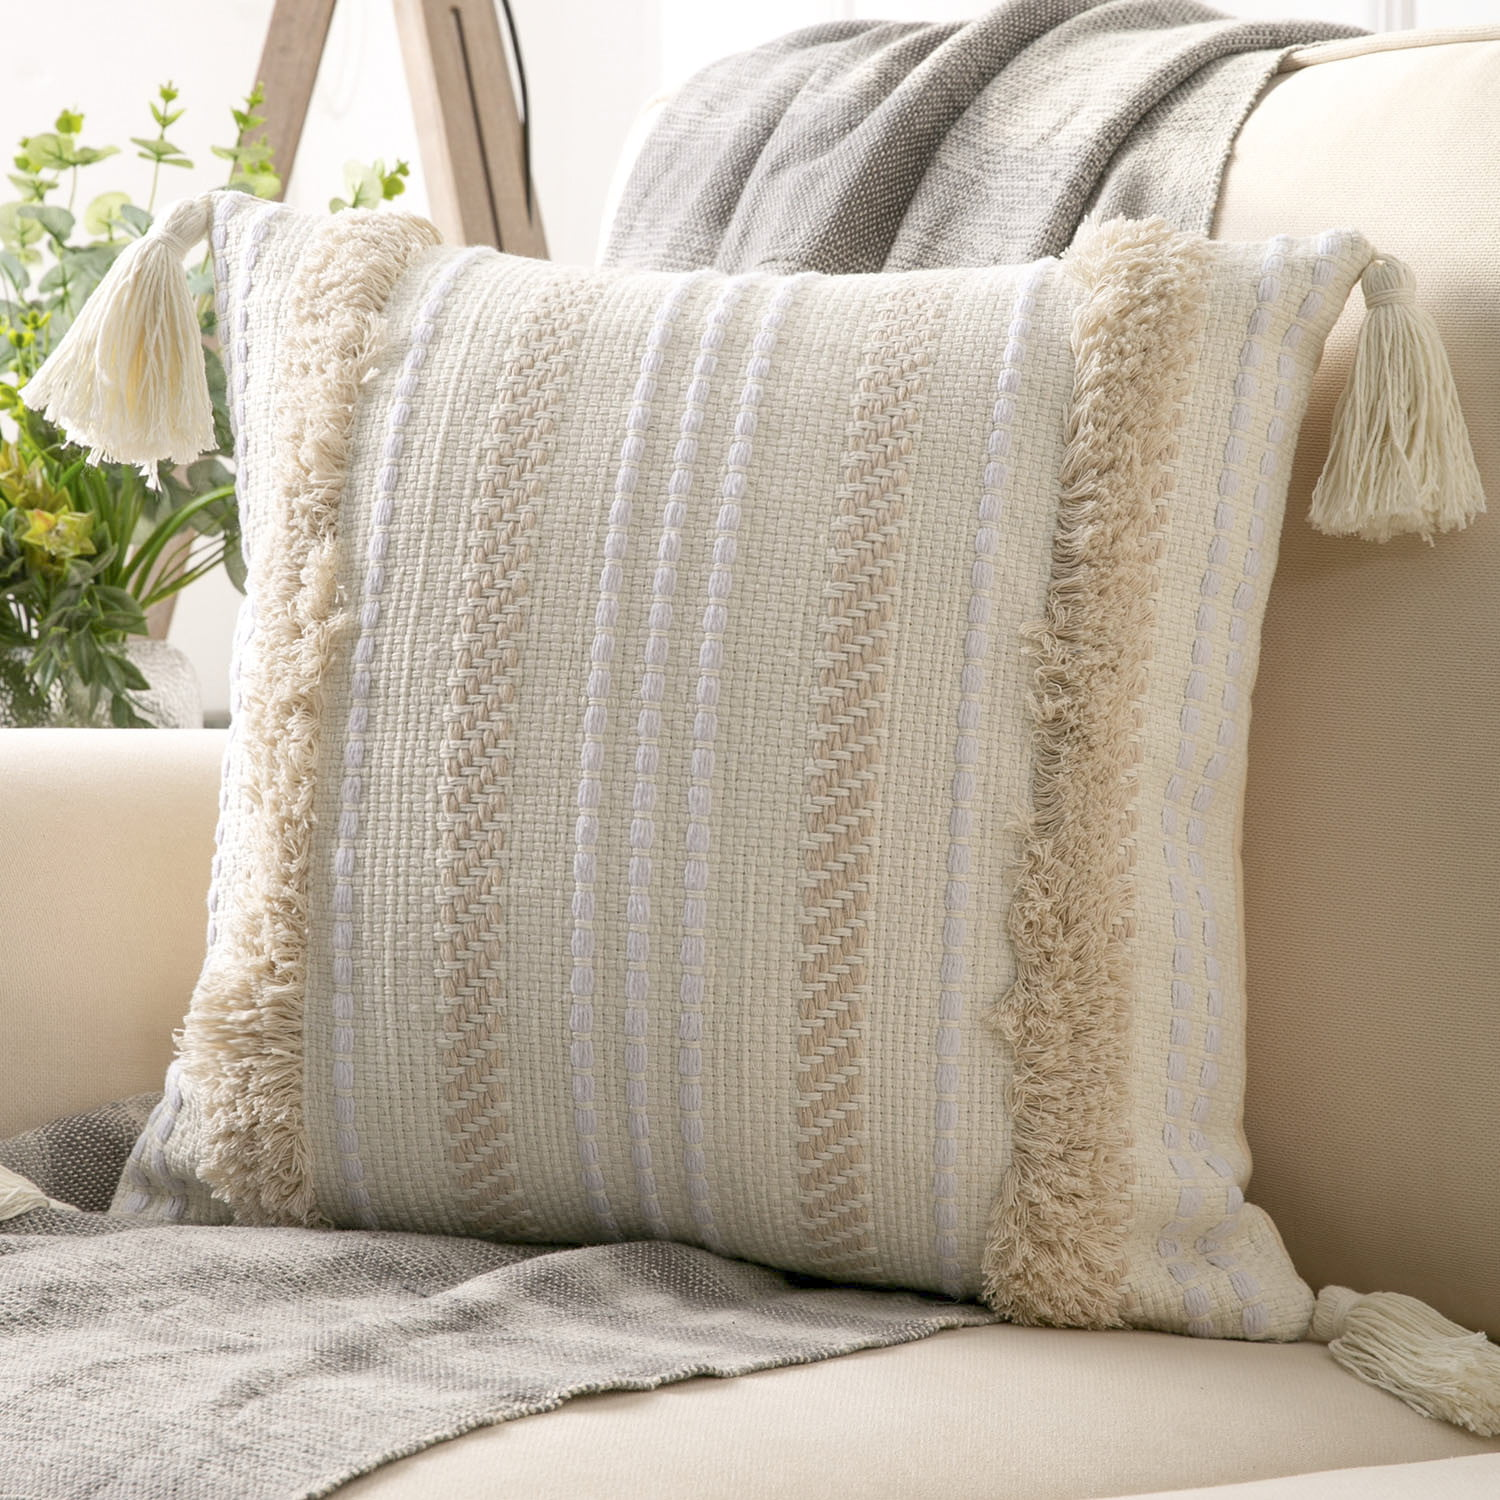 Phantoscope Boho Woven Tufted With Tassel Series Decorative Throw Pillow 18 X 18 Cream White Stripe 1 Pack Walmart Com Walmart Com